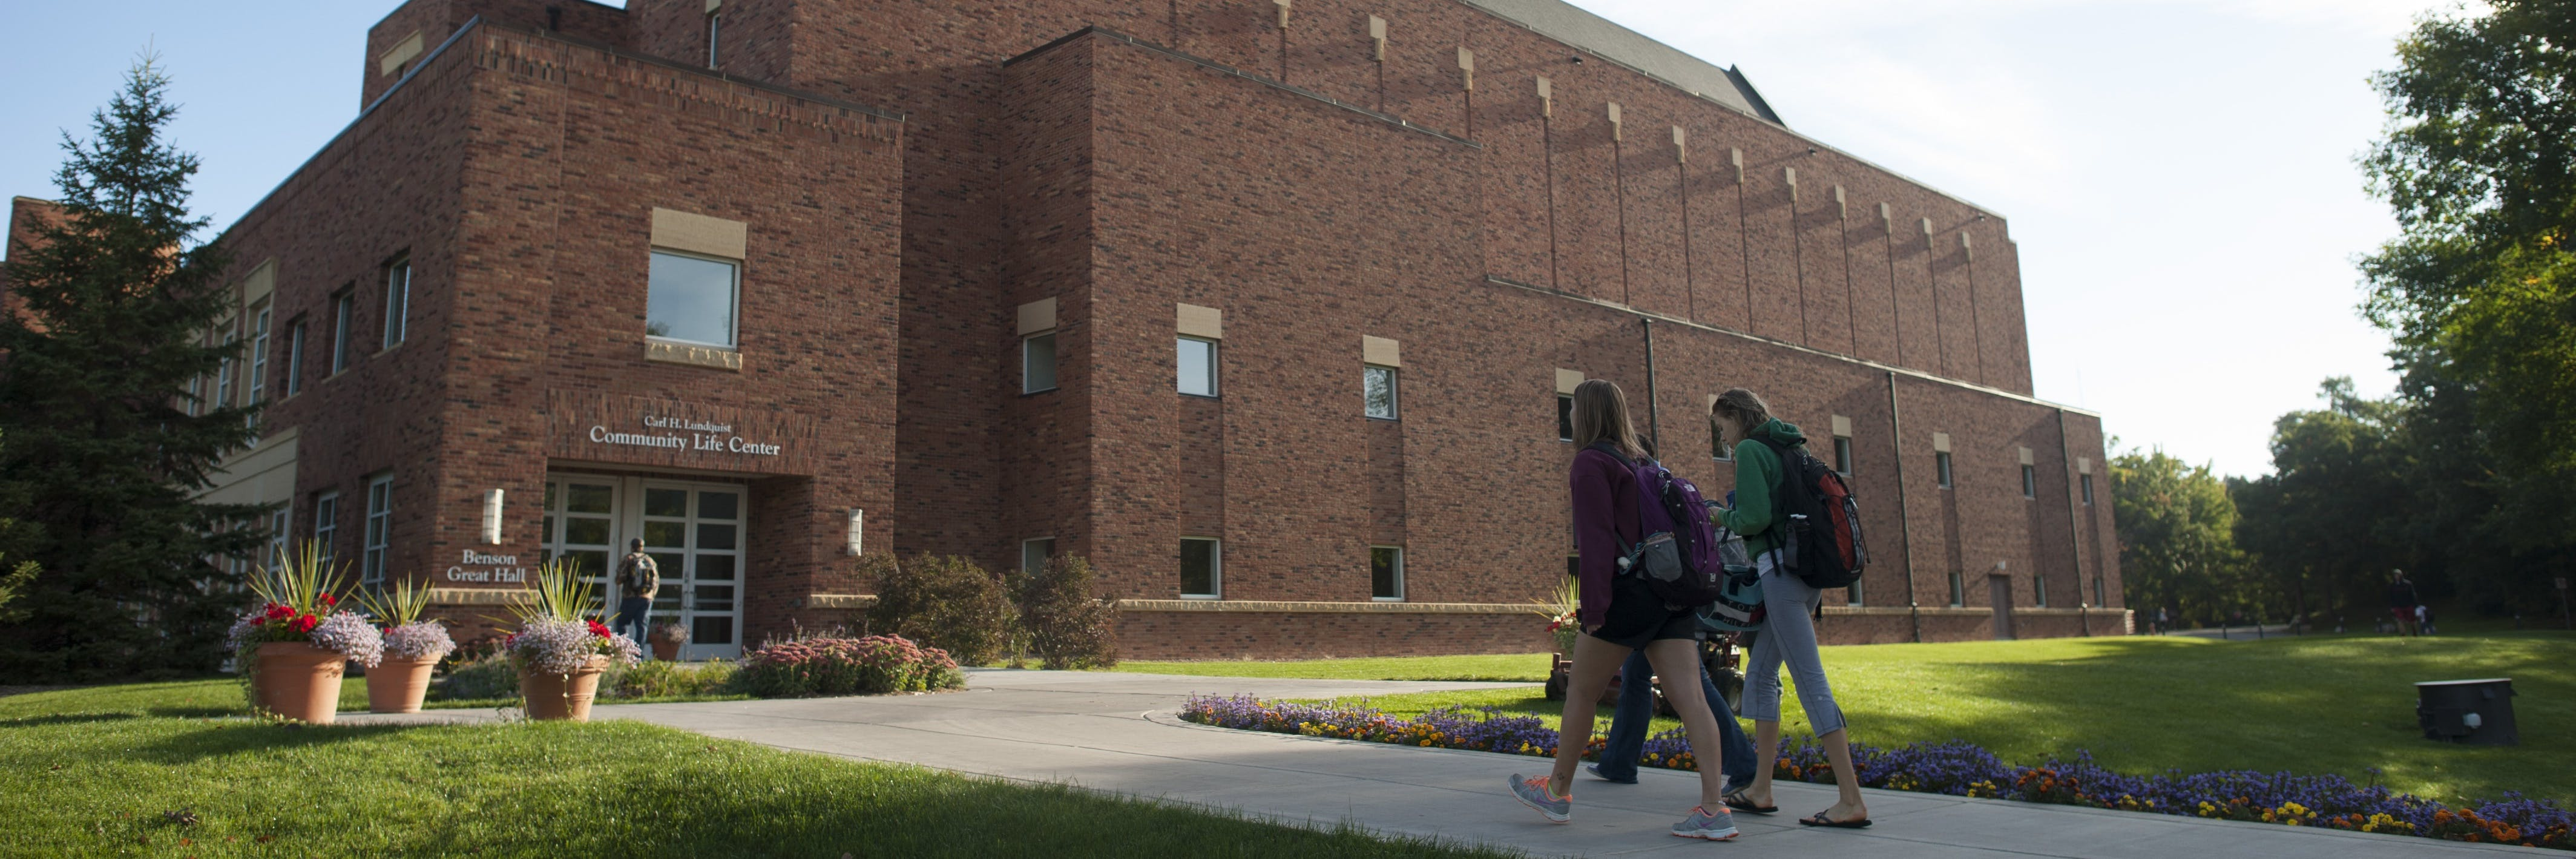 Students walking towards the CLC